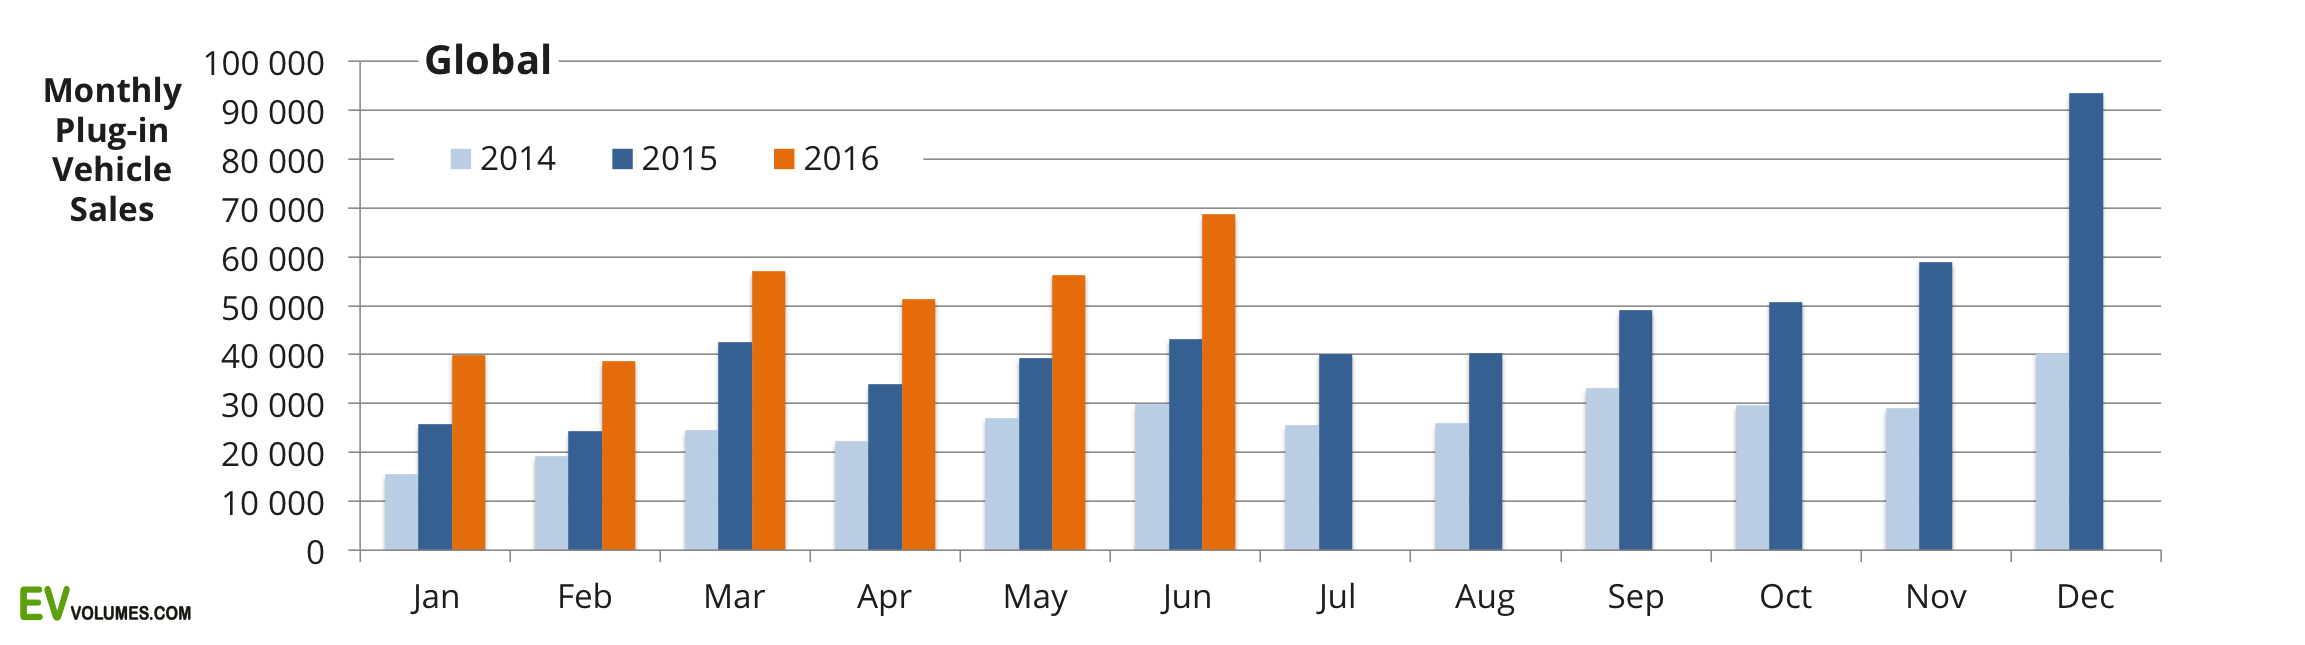 first Global Plug-in Vehicle Sales for 2016 H1 image